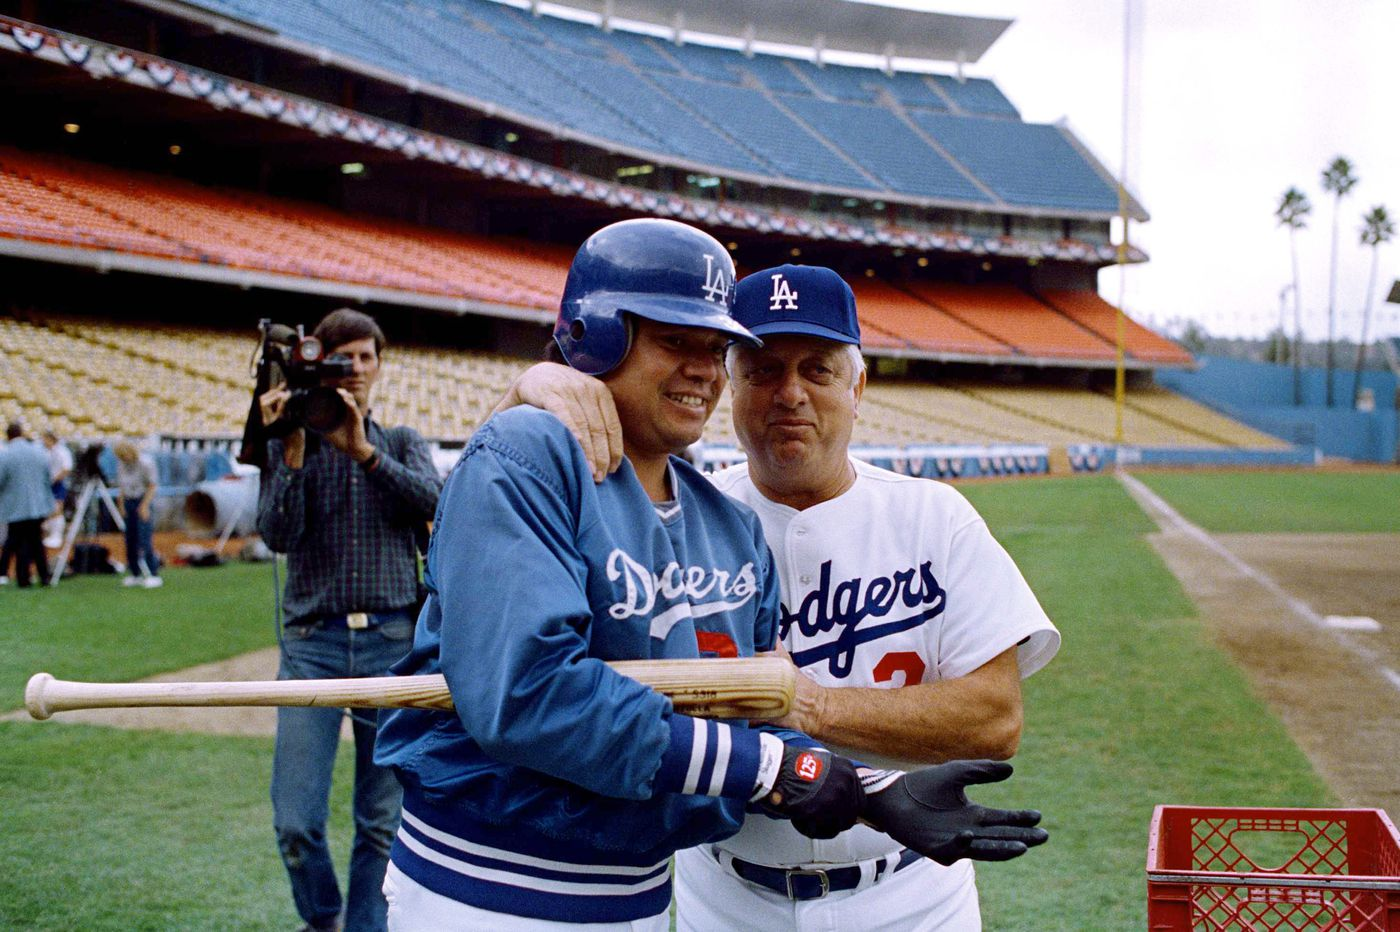 Dodgers legend Tommy Lasorda, a proud Norristown native, dies at 93